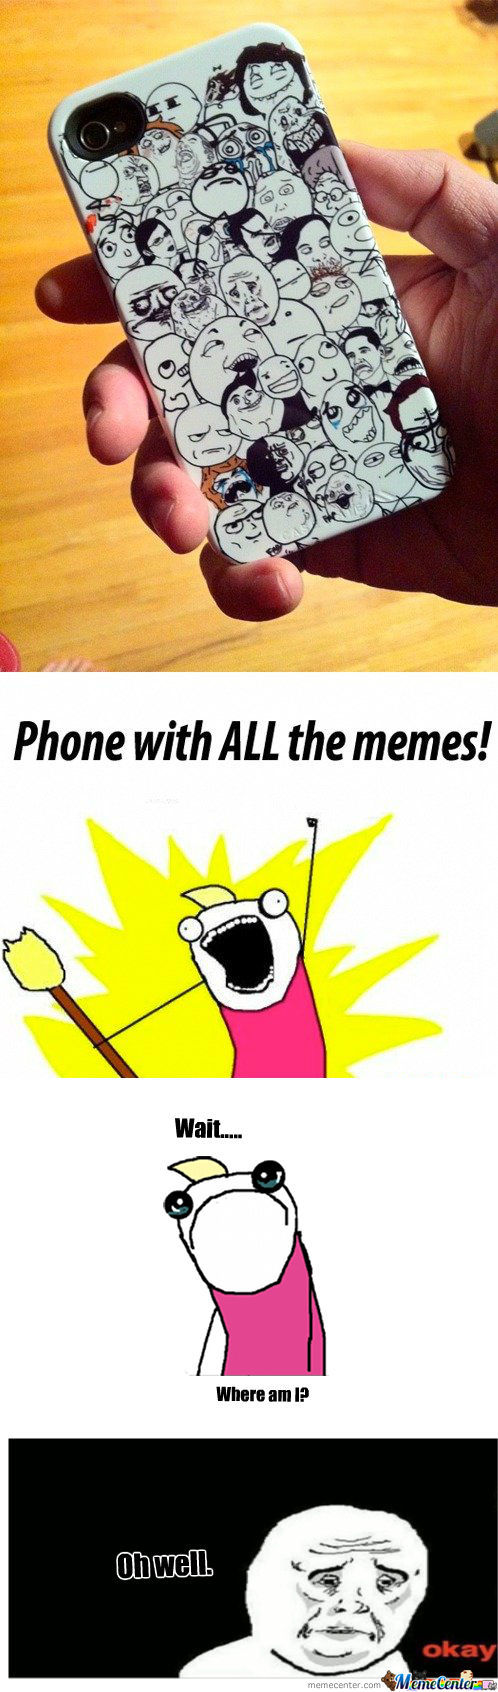 [RMX] Phone with all the memes